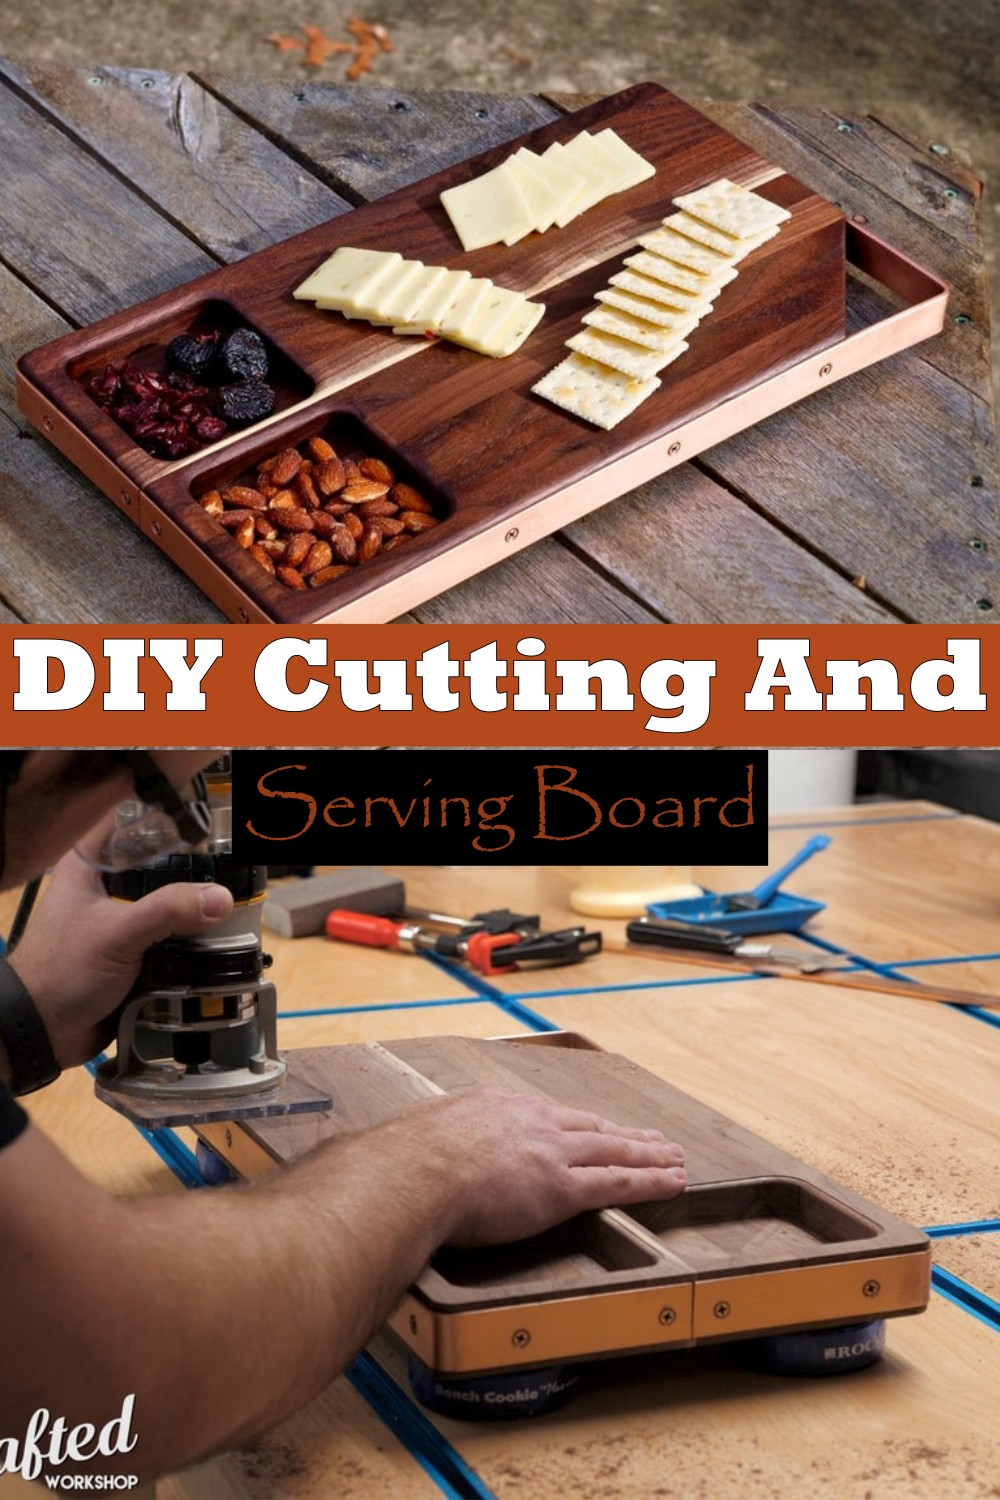 DIY Cutting And Serving Board